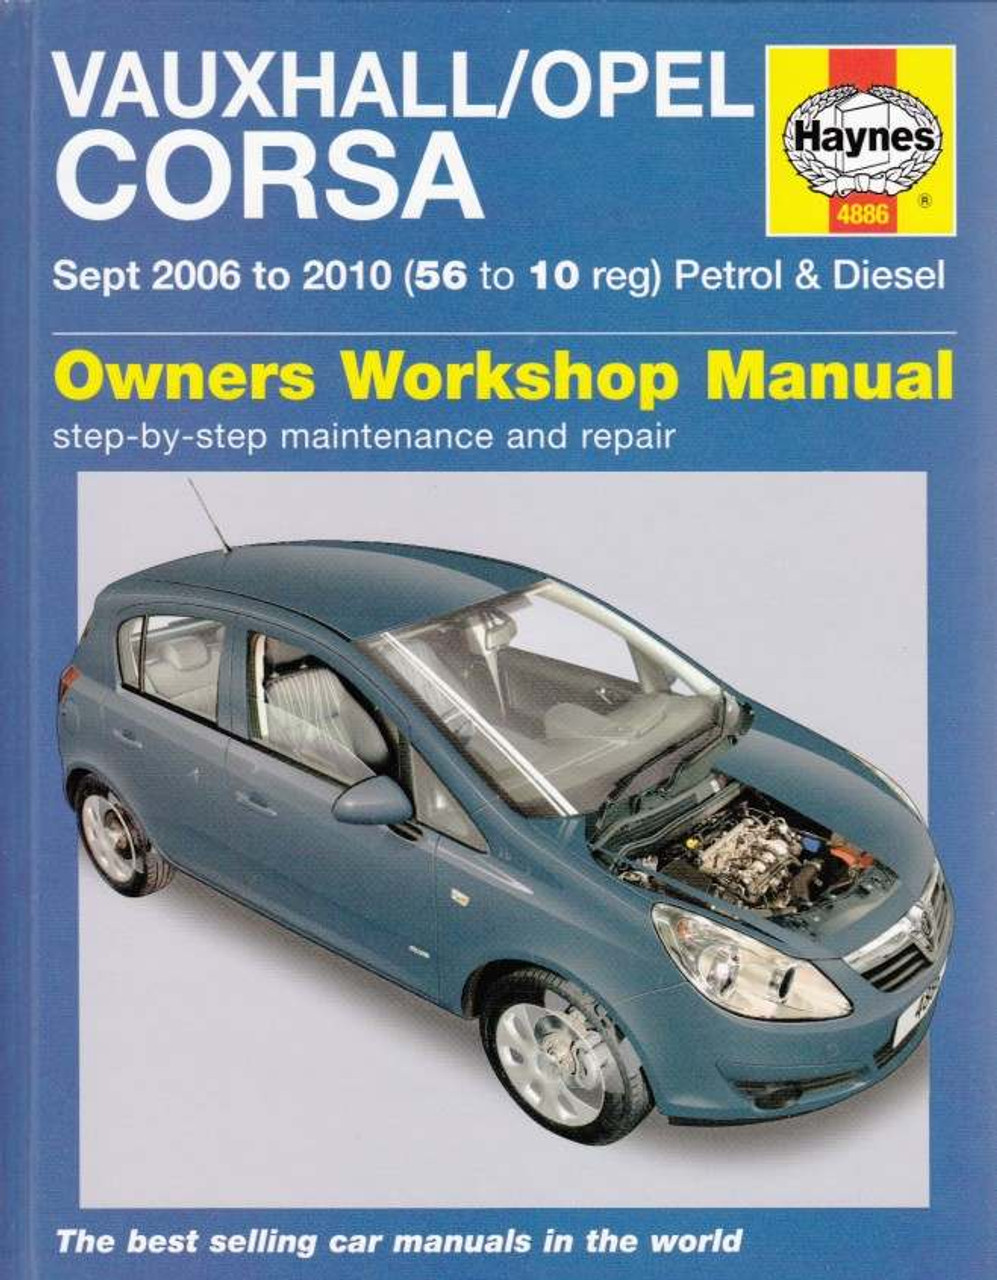 buy holden barina vauxhall opel corsa 2006 2010 workshop manual rh automotobookshop com au Holden Barina Spark Holden Barina Interior